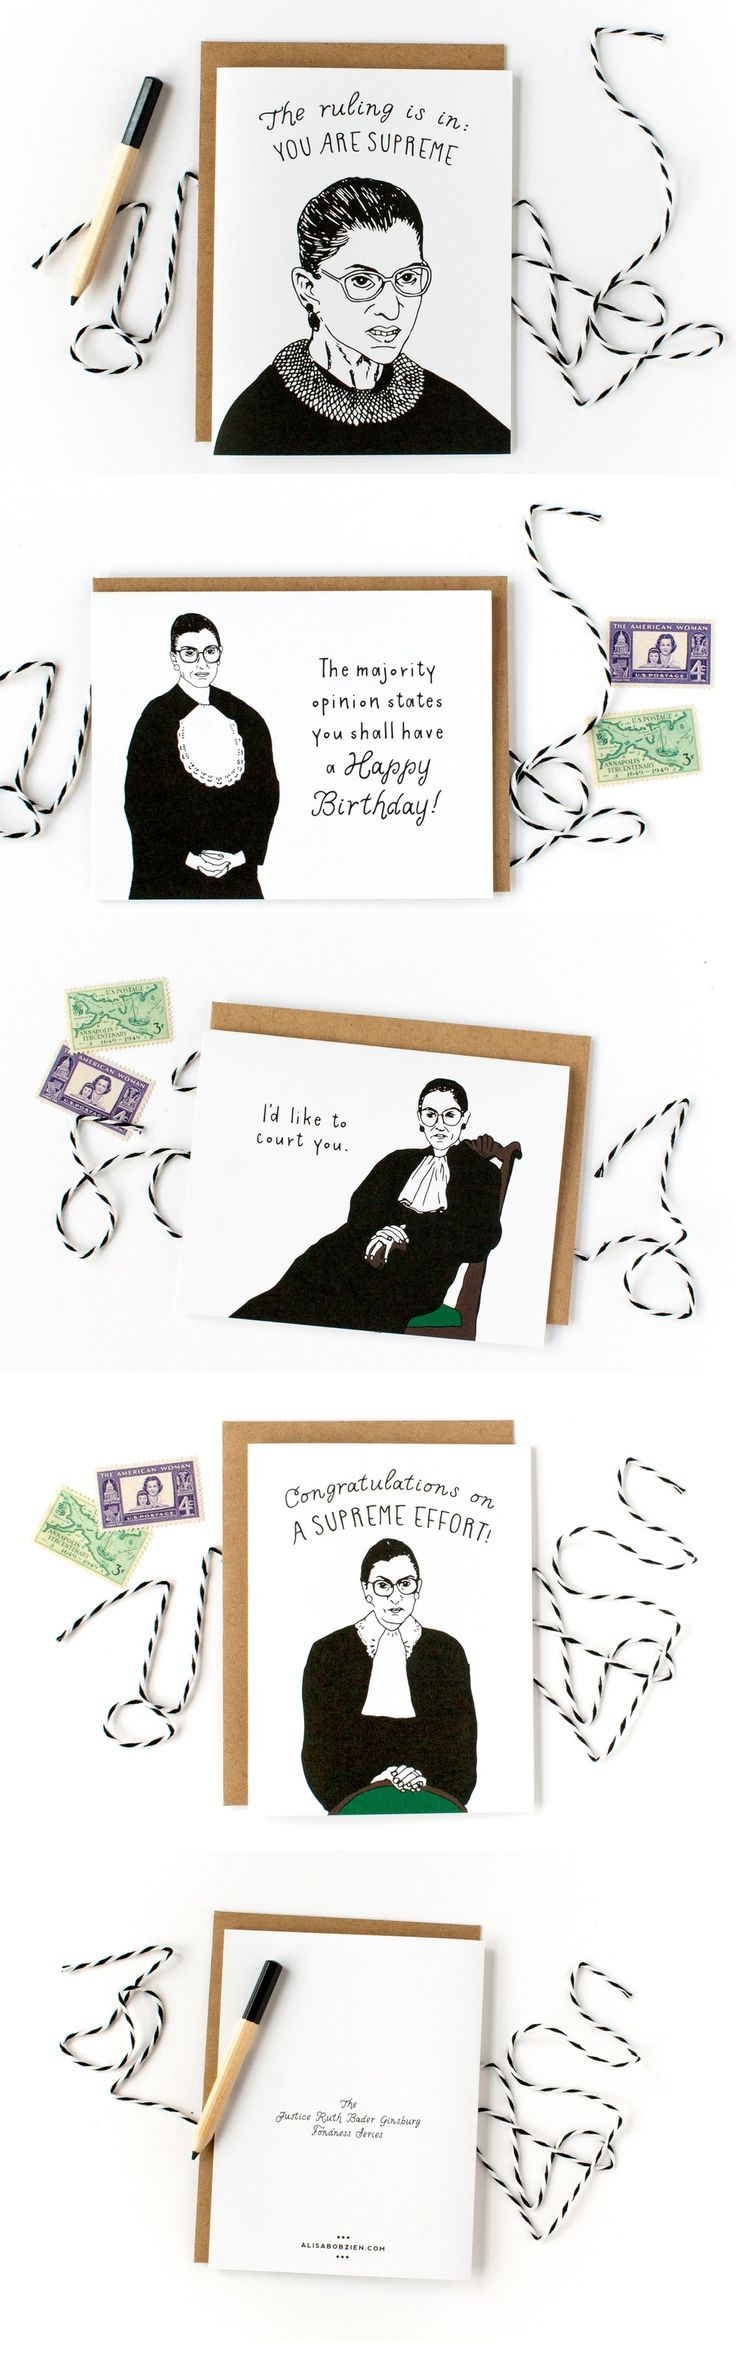 Justice Ruth Bader Ginsburg Fondness Card Series!